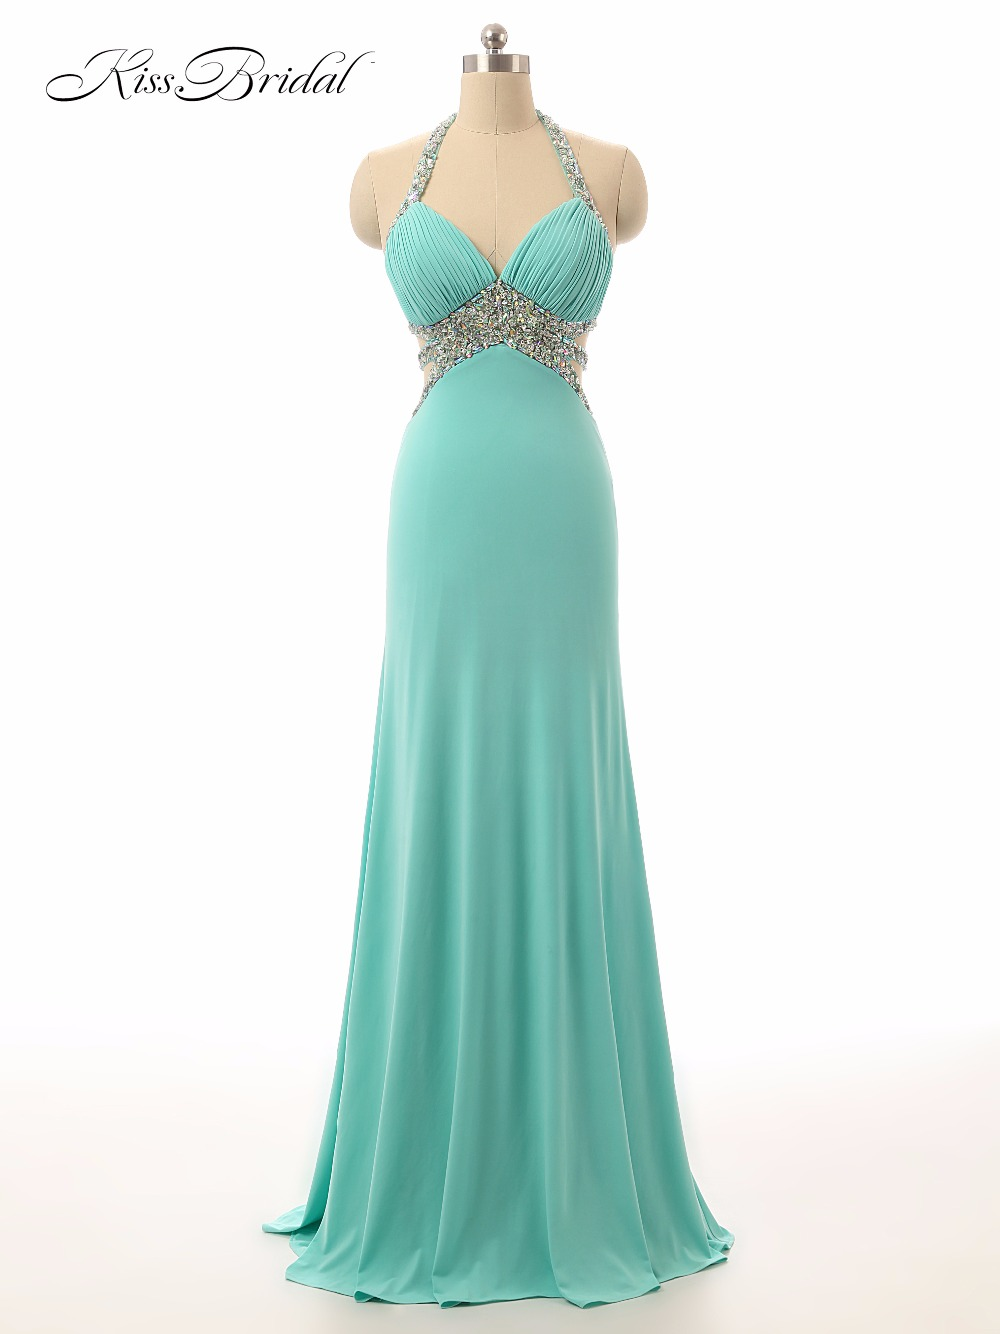 New Long Prom Dresses 2017 Halter Neck A Line Floor Length Beaded Crystals Sexy Women Formal Evening Party Dresses